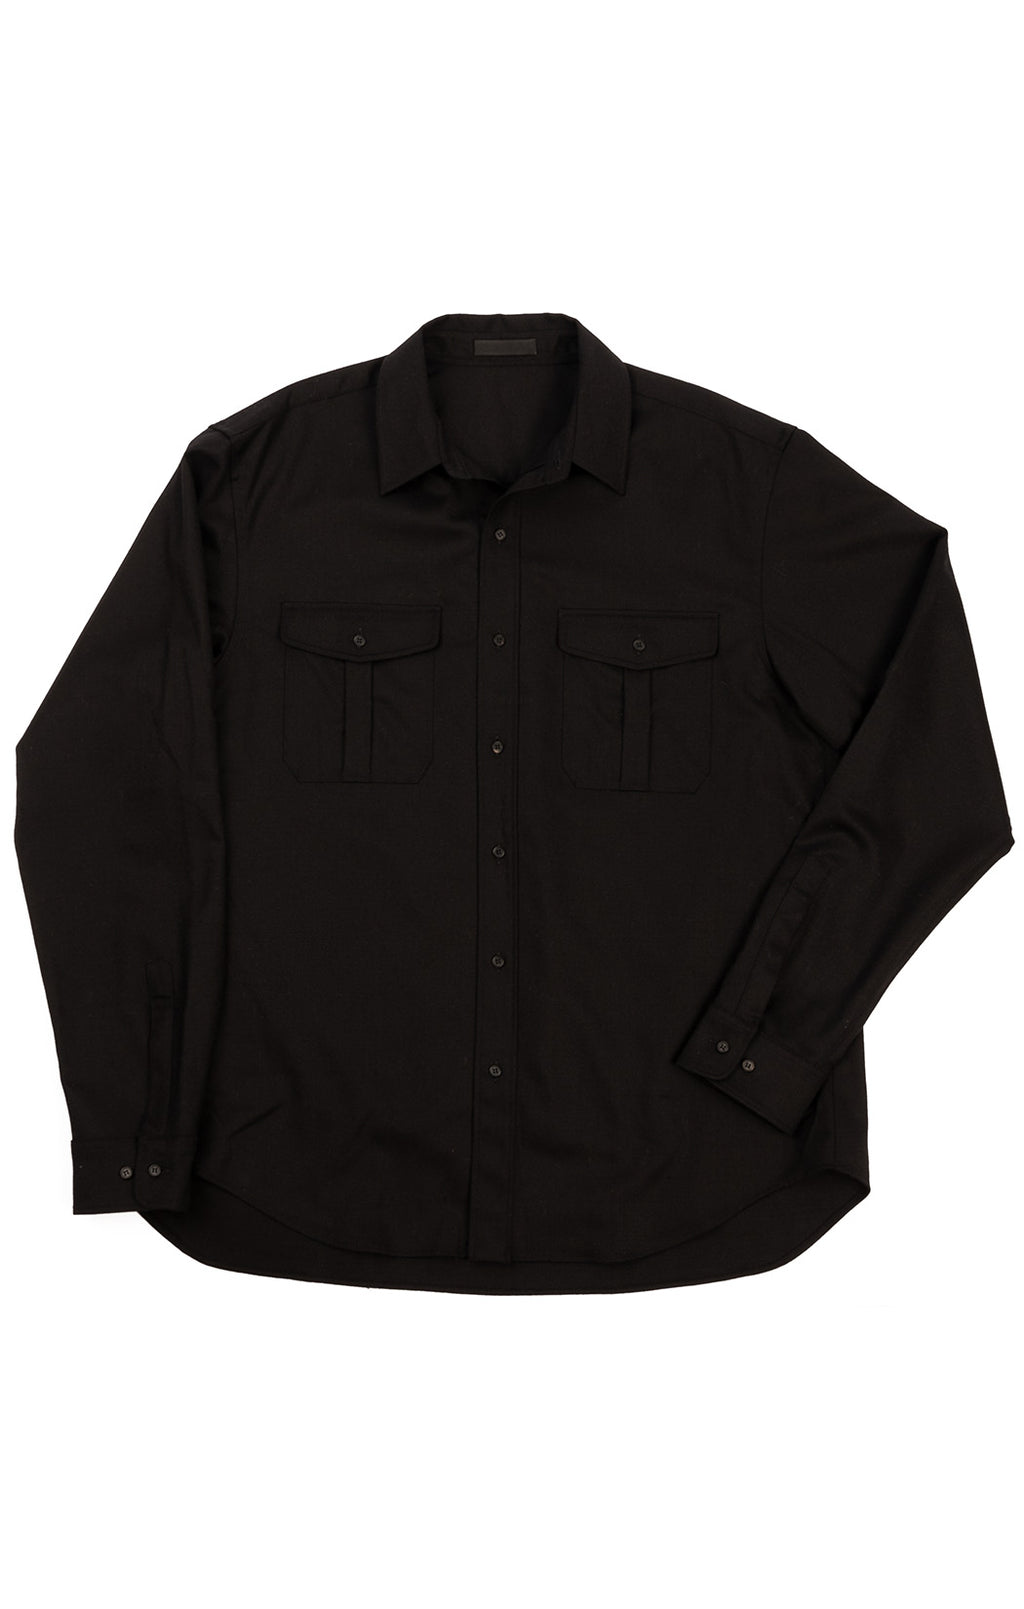 Black long sleeve button down shirt with two front pockets